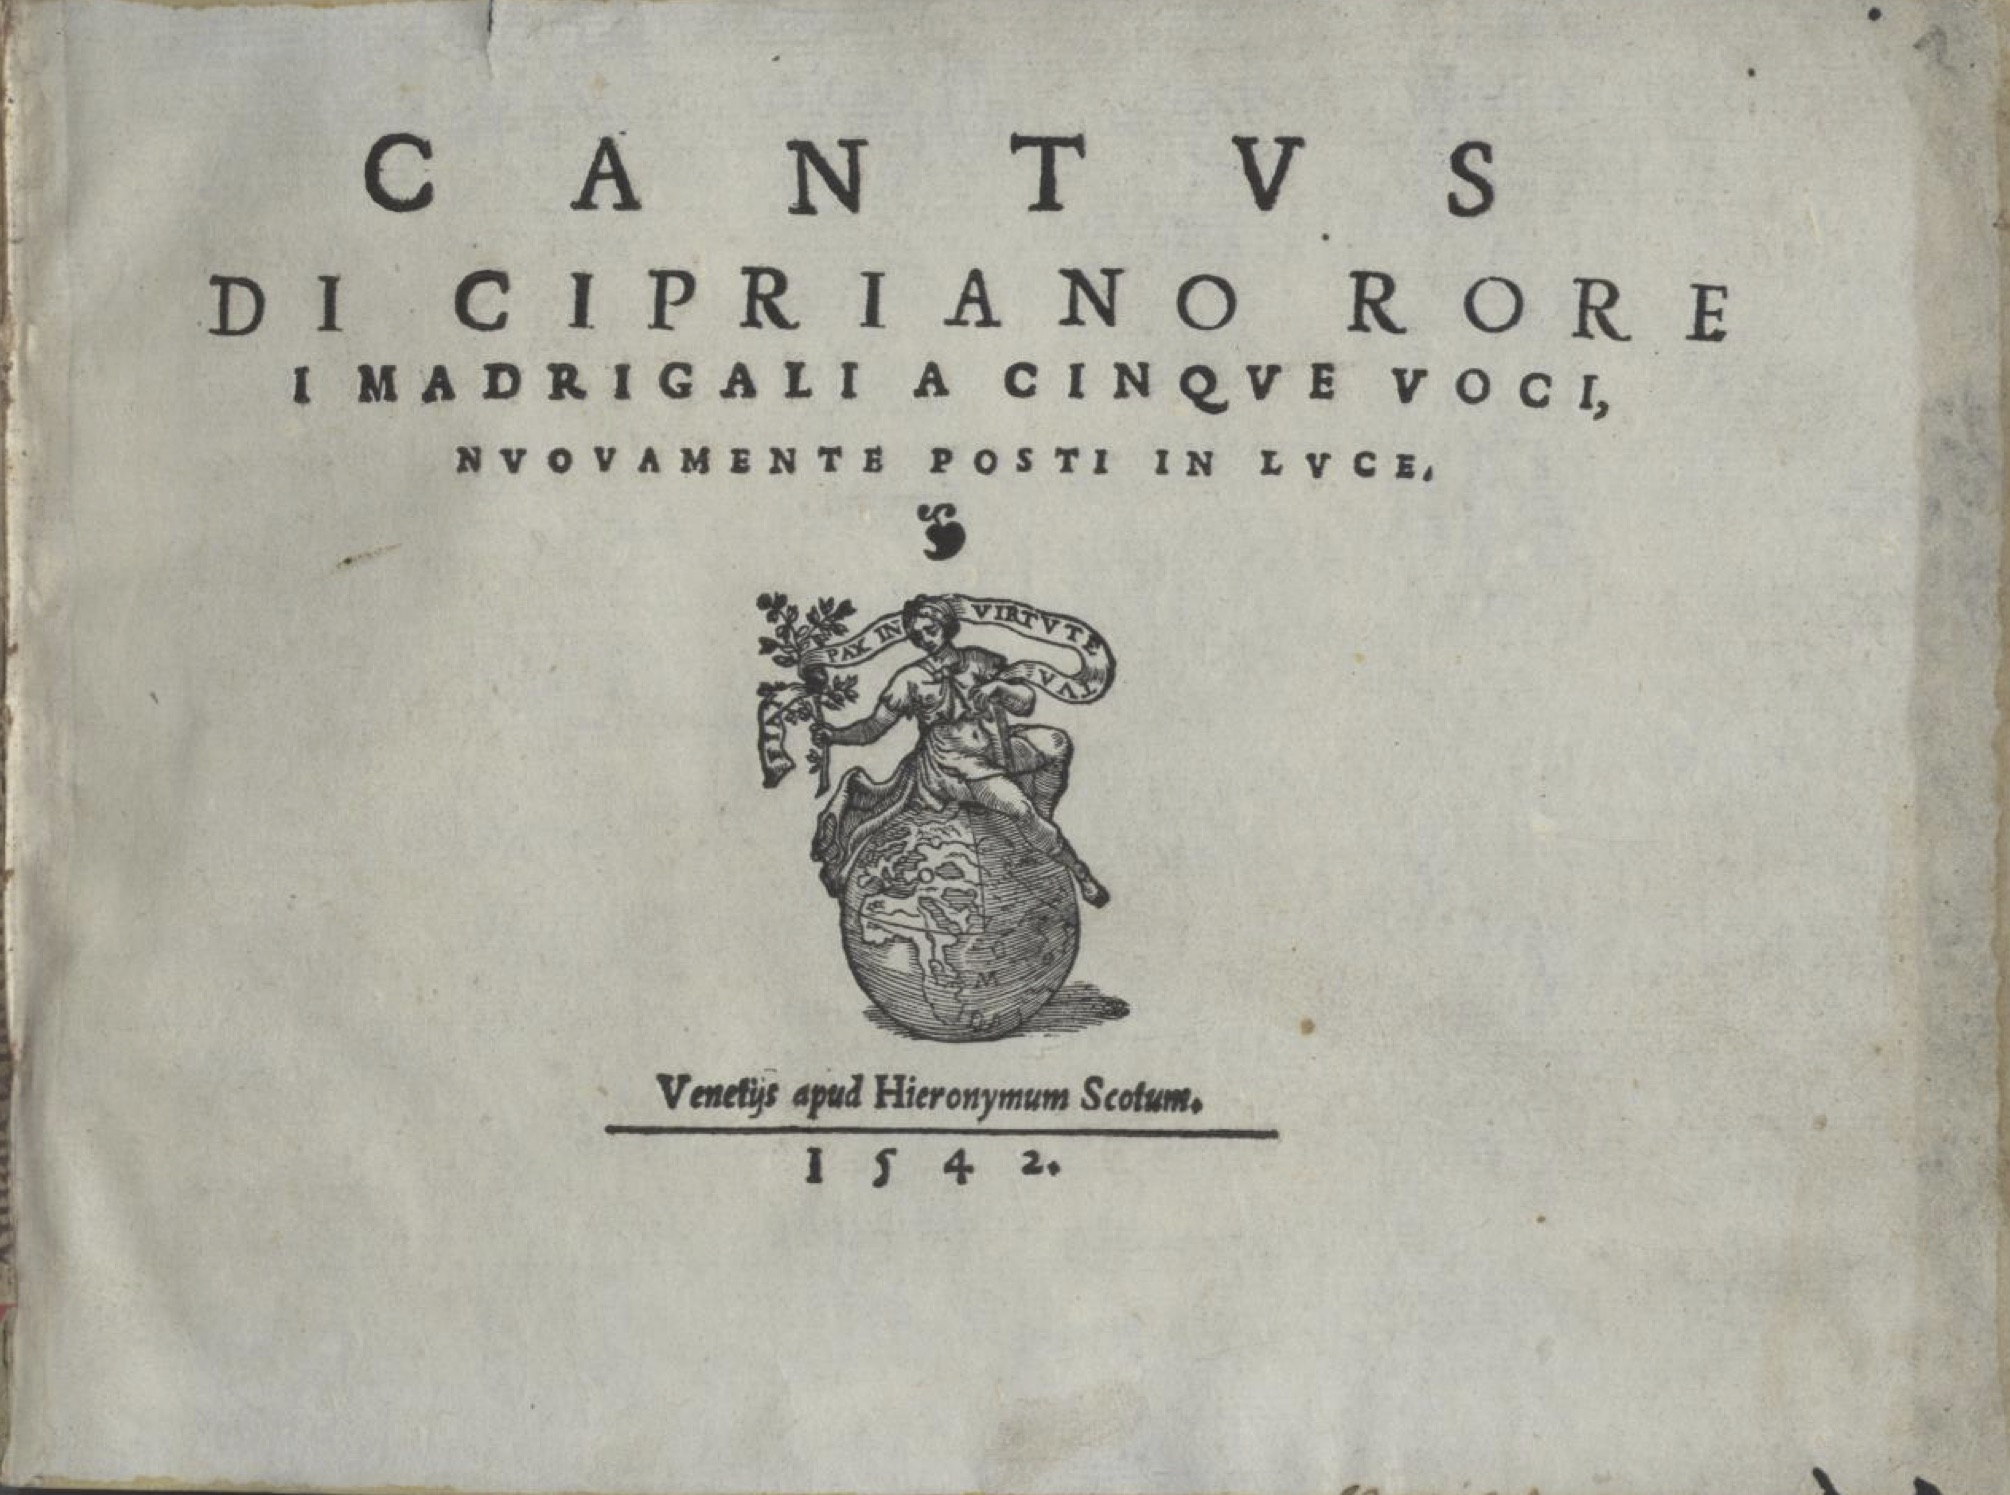 Cantus title page 1542